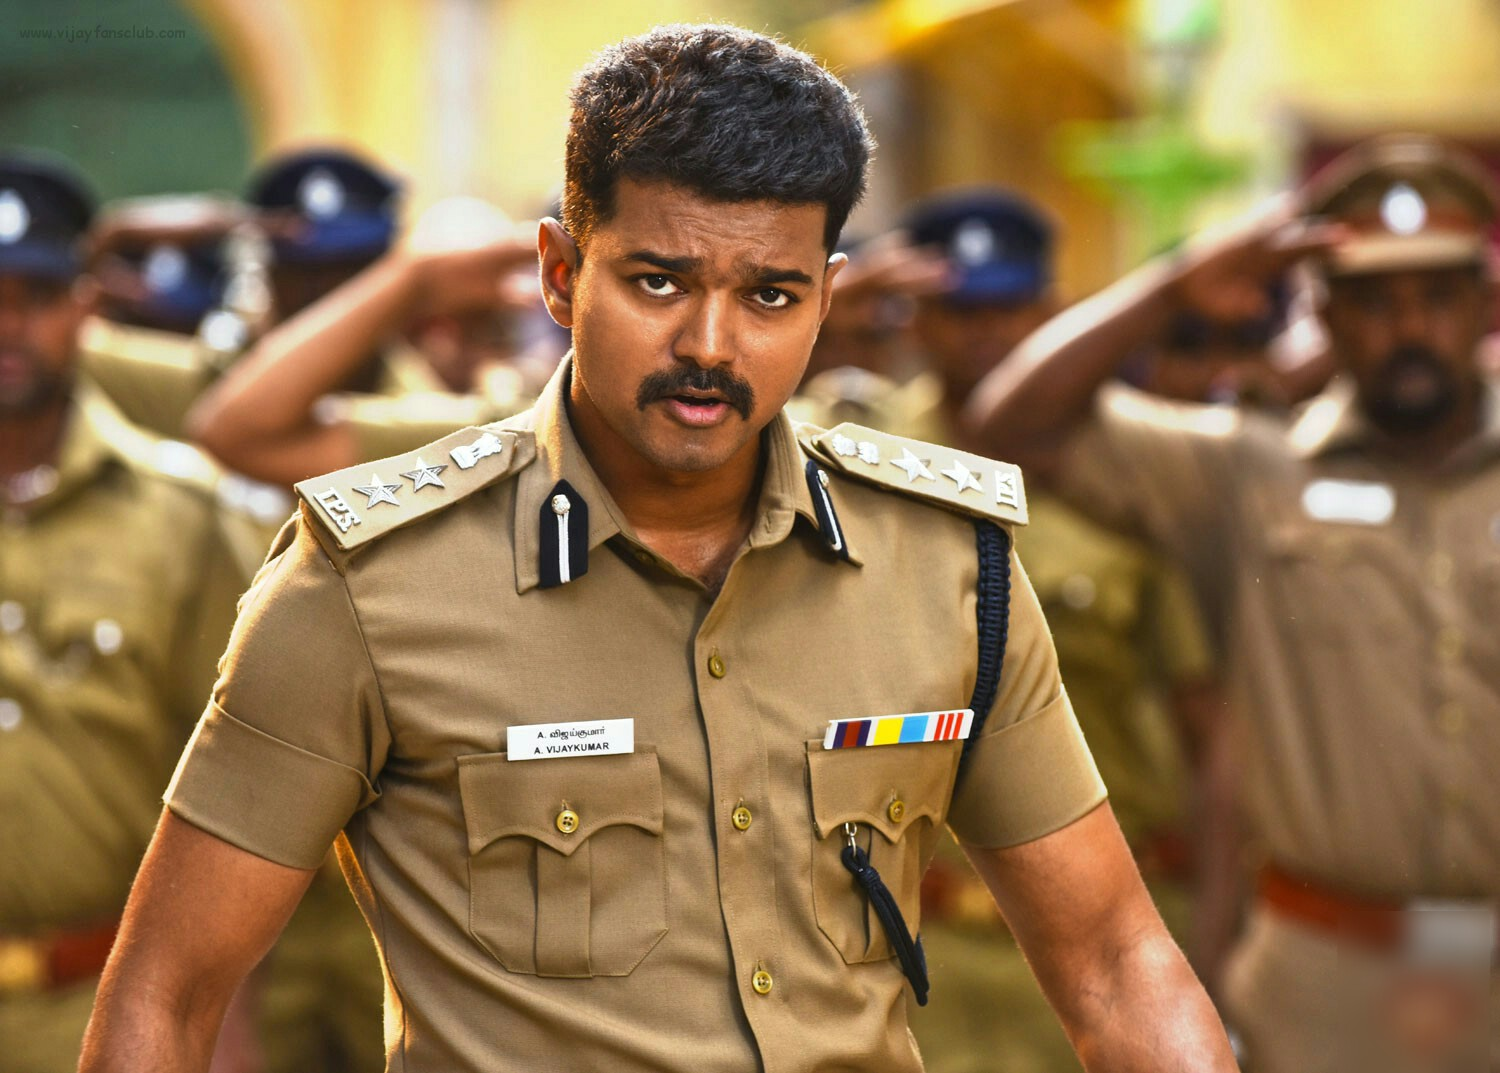 beautiful police ilayathalapathi download wallpapers free hd images